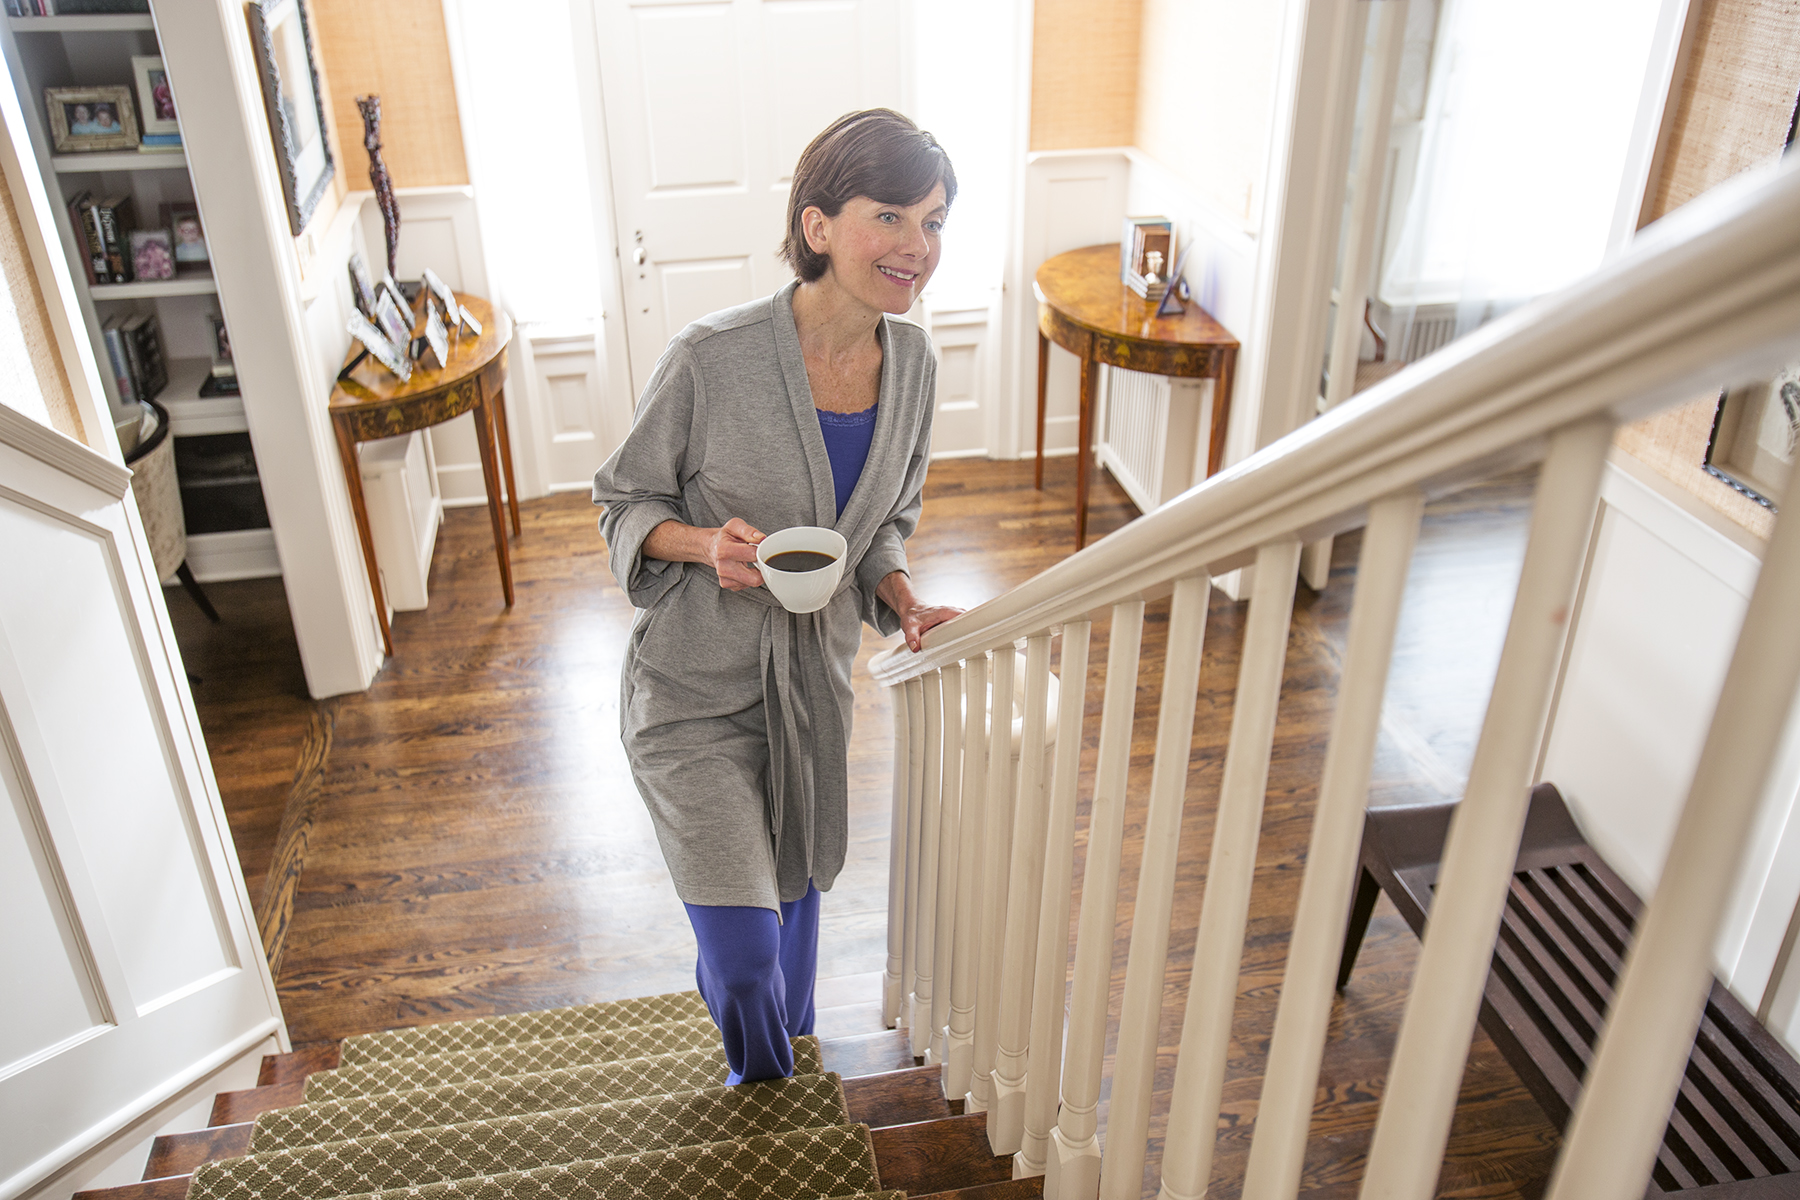 Woman-OnStairs-53_r1.jpg